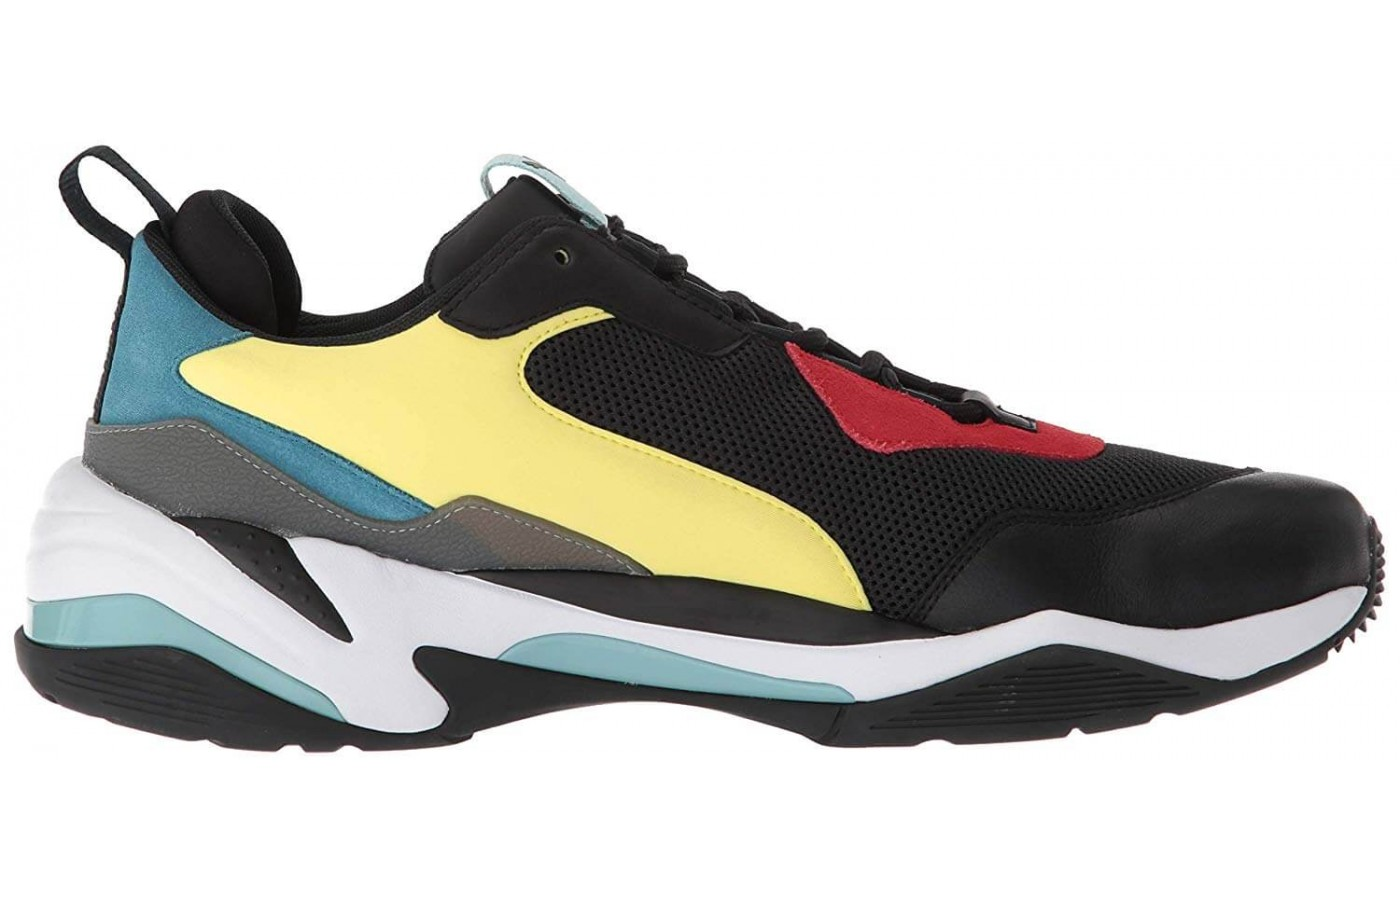 487d70eca9620b Puma Thunder Spectra Reviewed   Rated in 2019